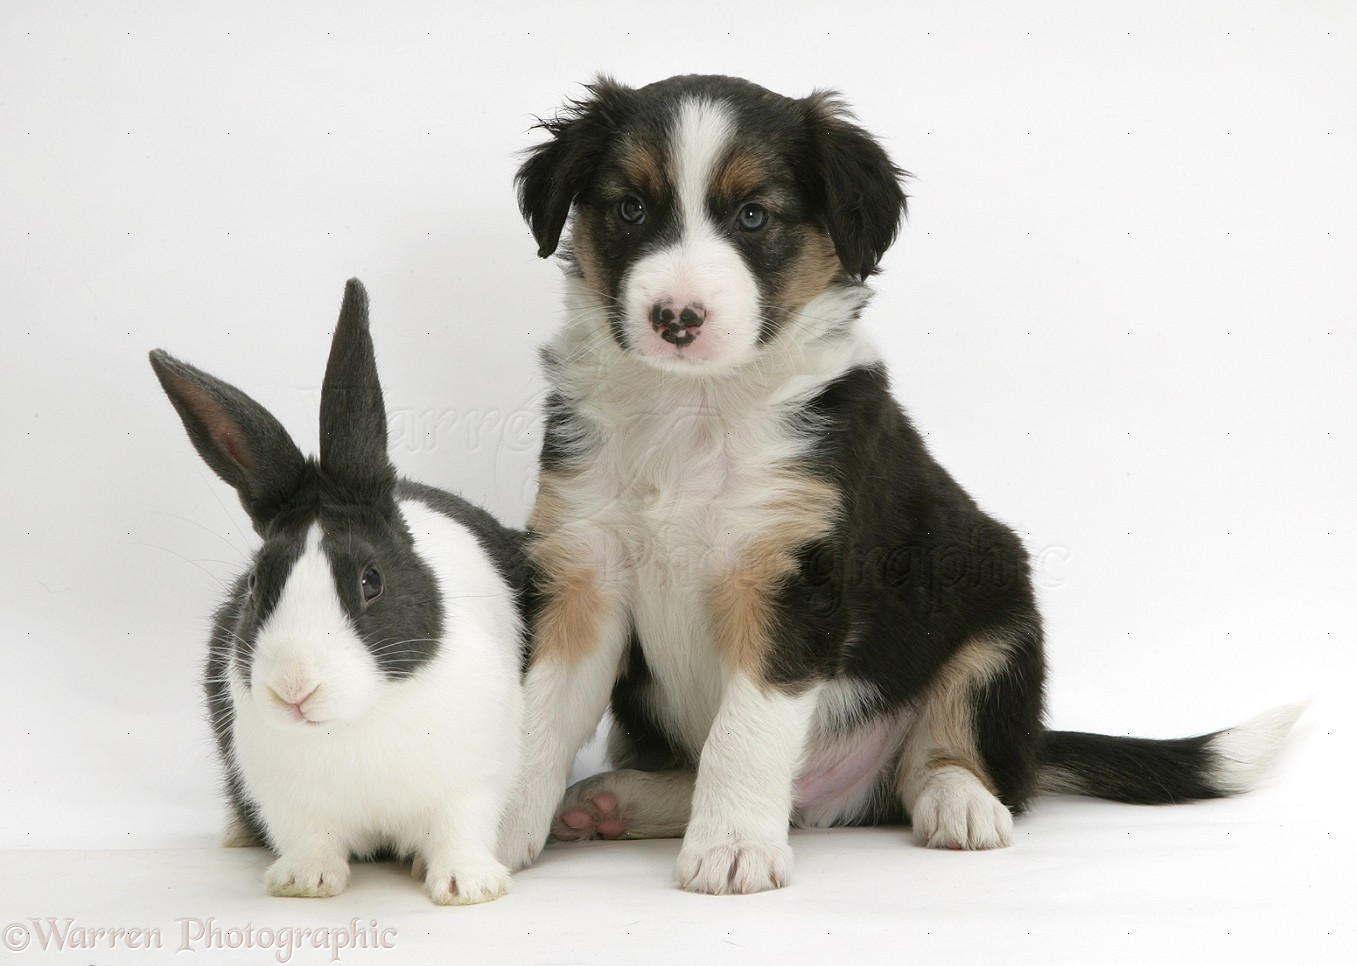 Tricolour Border Collie pup with blue Dutch rabbit photo - WP17905